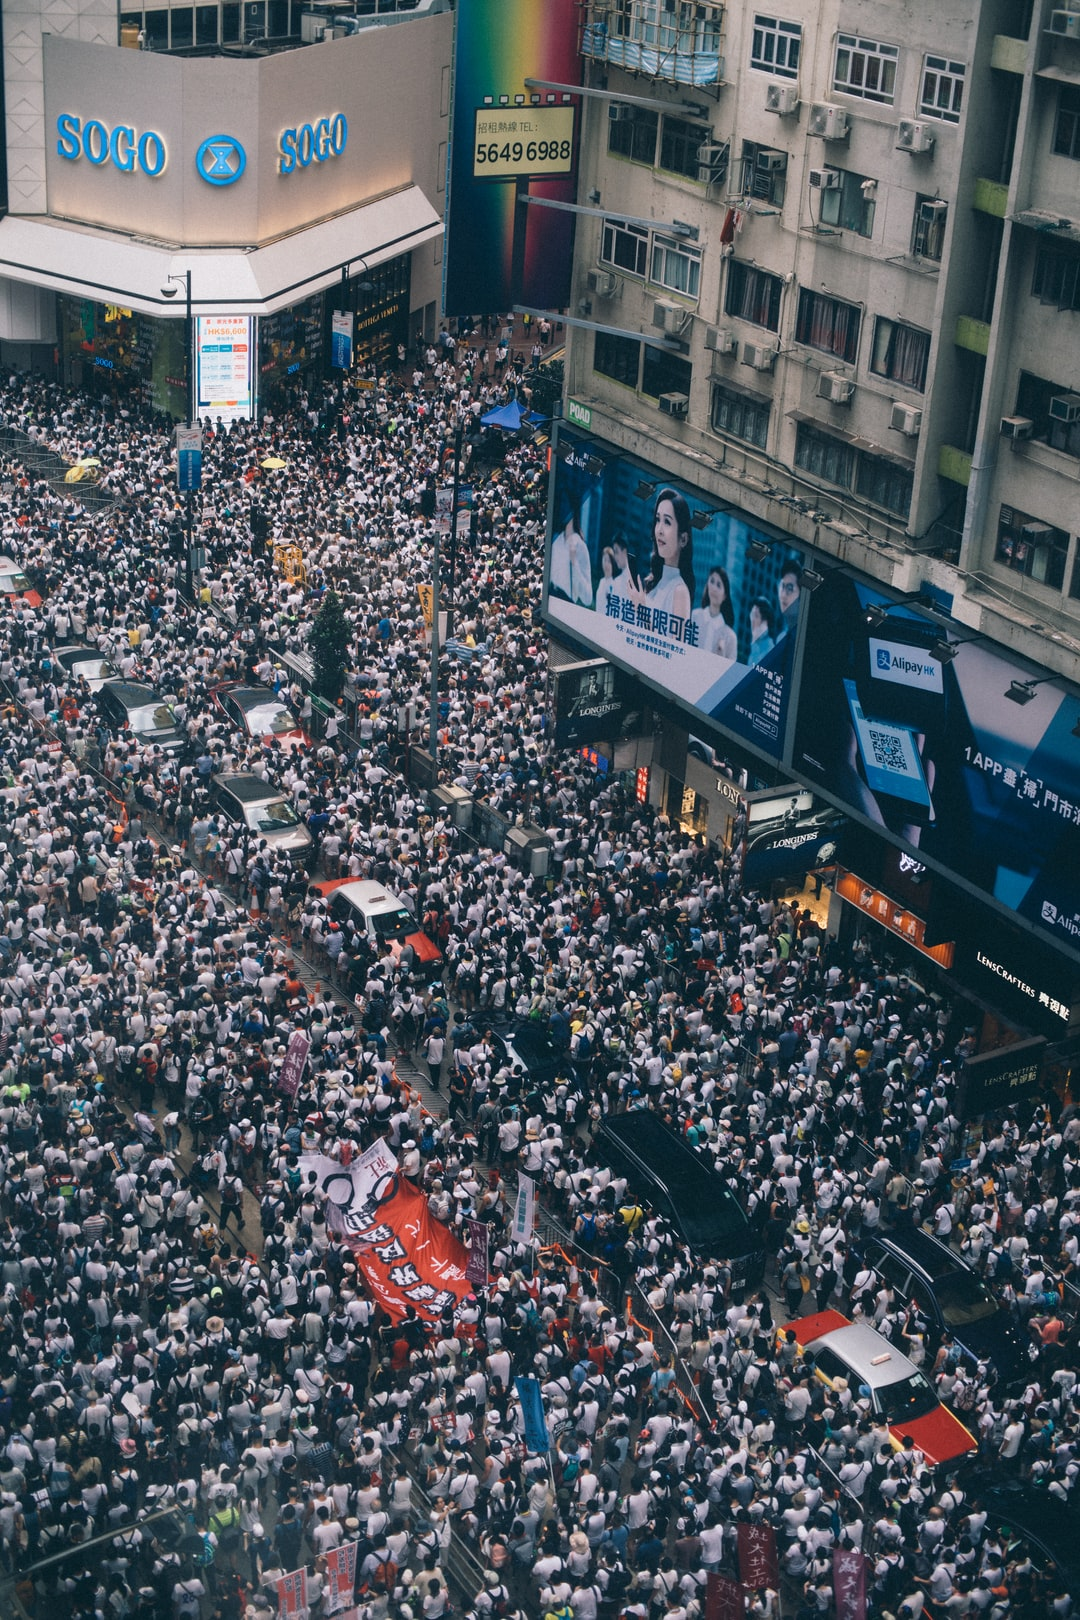 More than 1 million marched in protest against controversial extradition bill, 09/06/2019